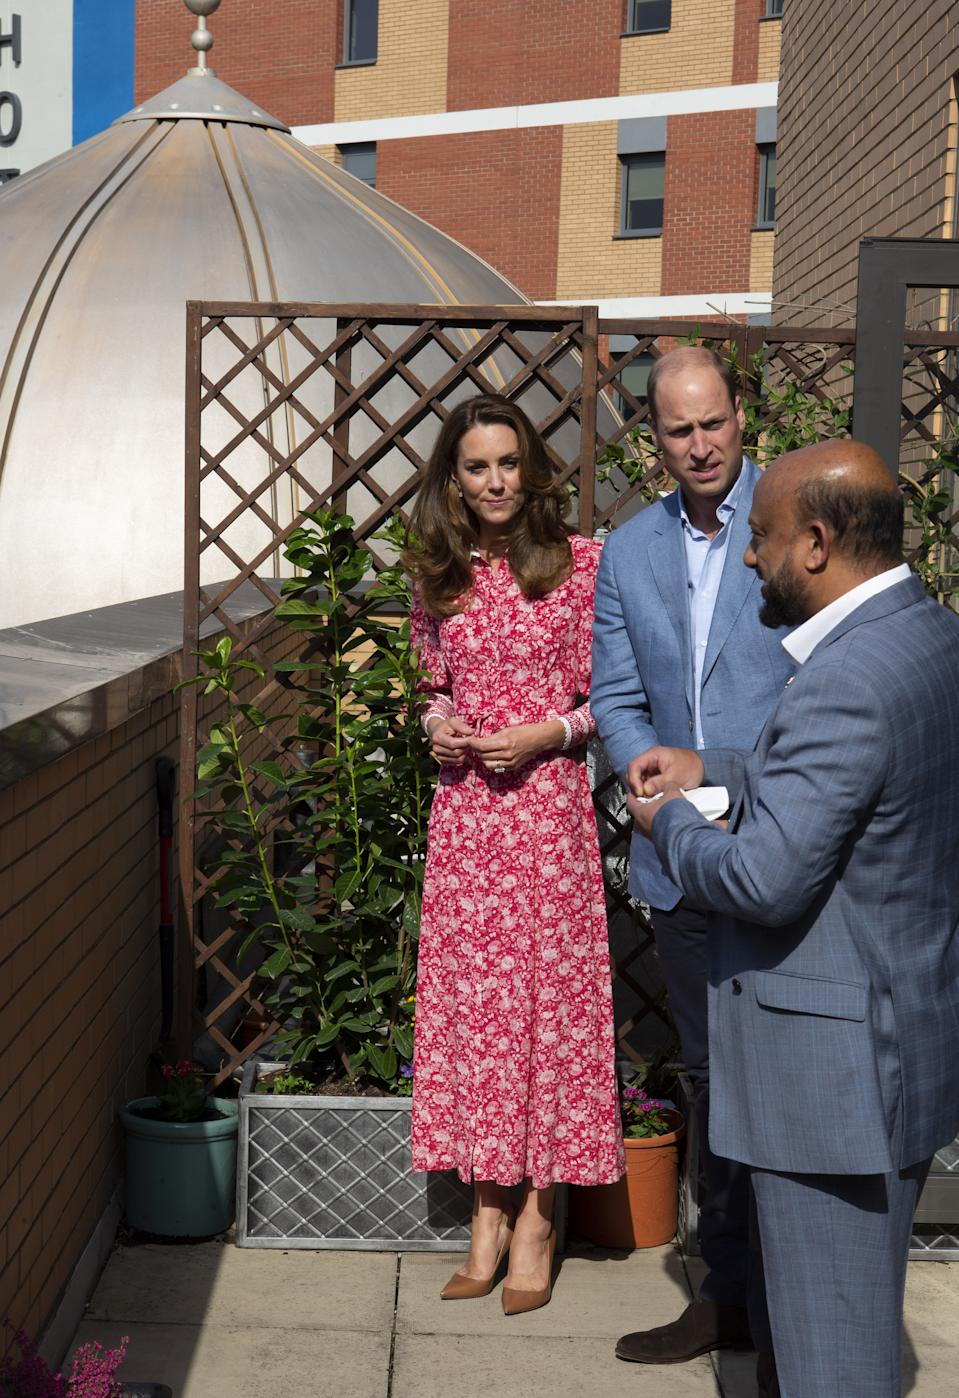 The Duke and Duchess of Cambridge during a visit to the East London Mosque where they chatted to volunteers who cooked and delivered meals to vulnerable members of the community during the pandemic.